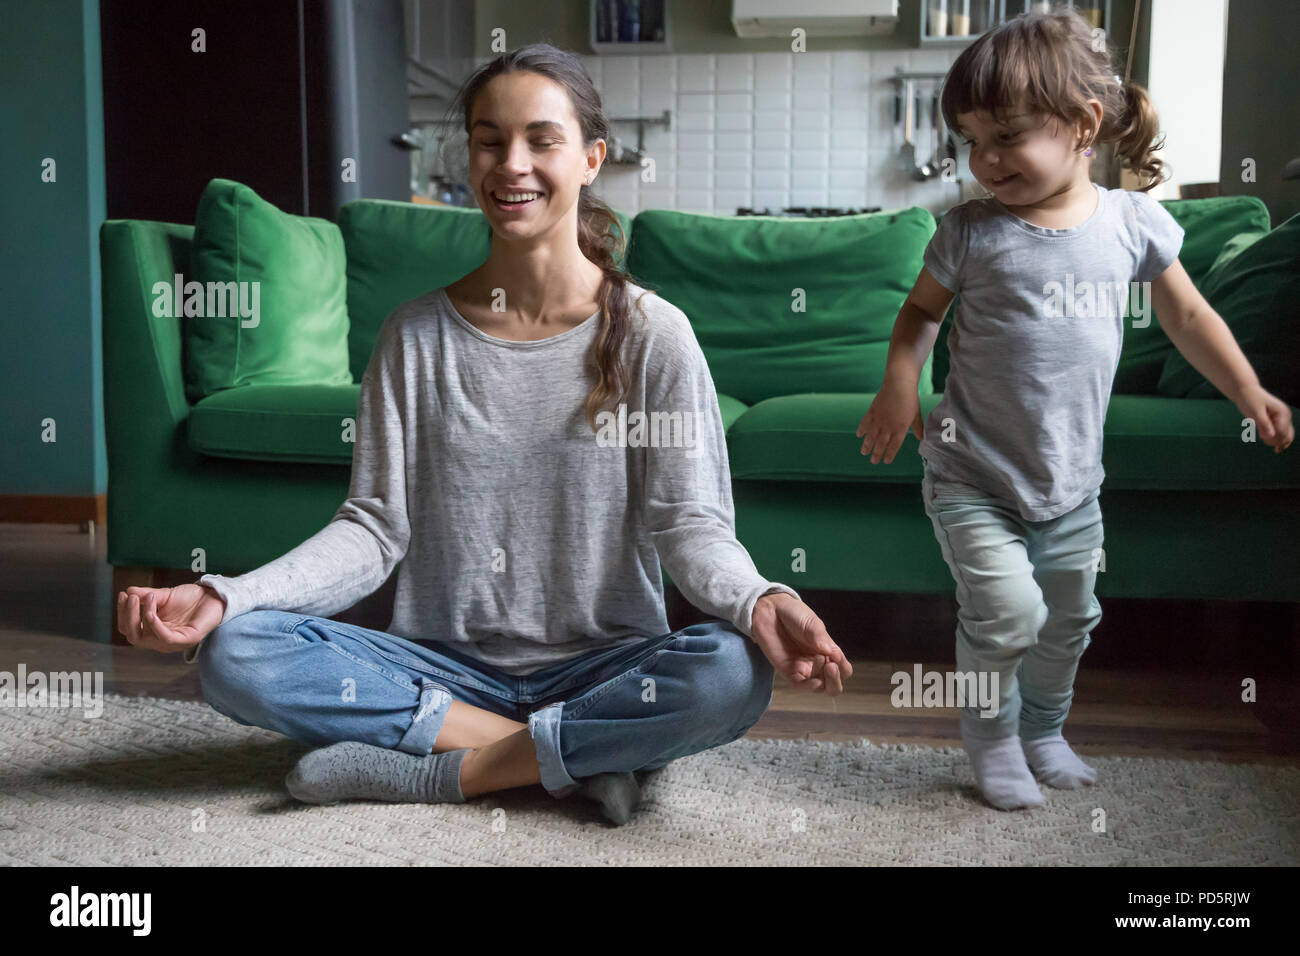 Happy mindful mother doing yoga with kid playing at home - Stock Image